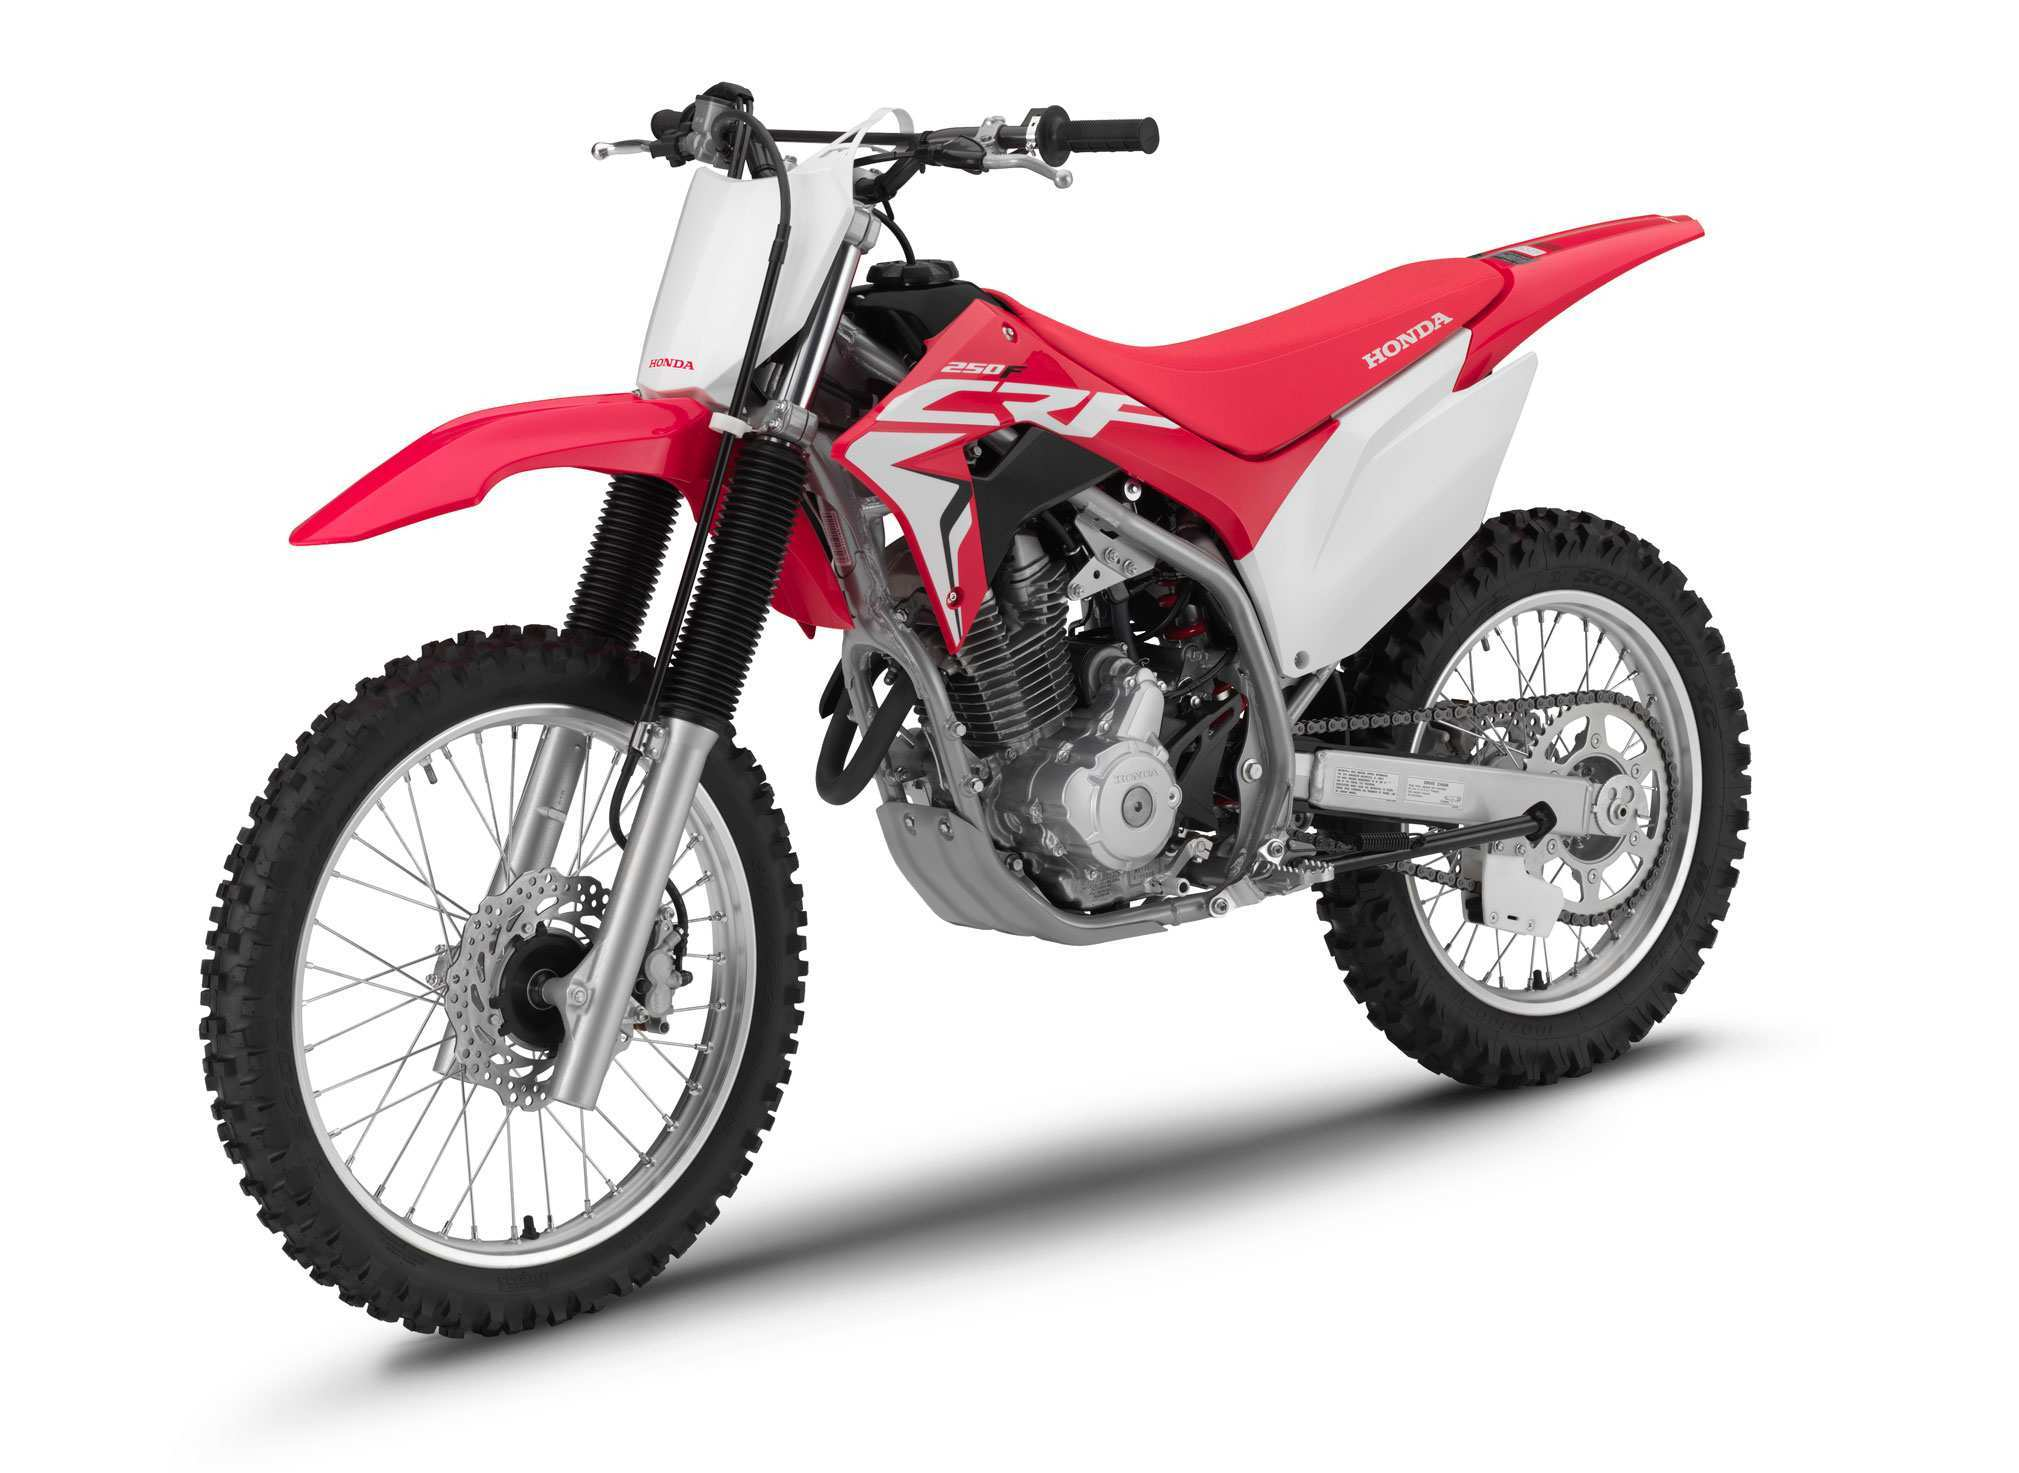 64 New 2019 Honda 250F Pictures with 2019 Honda 250F